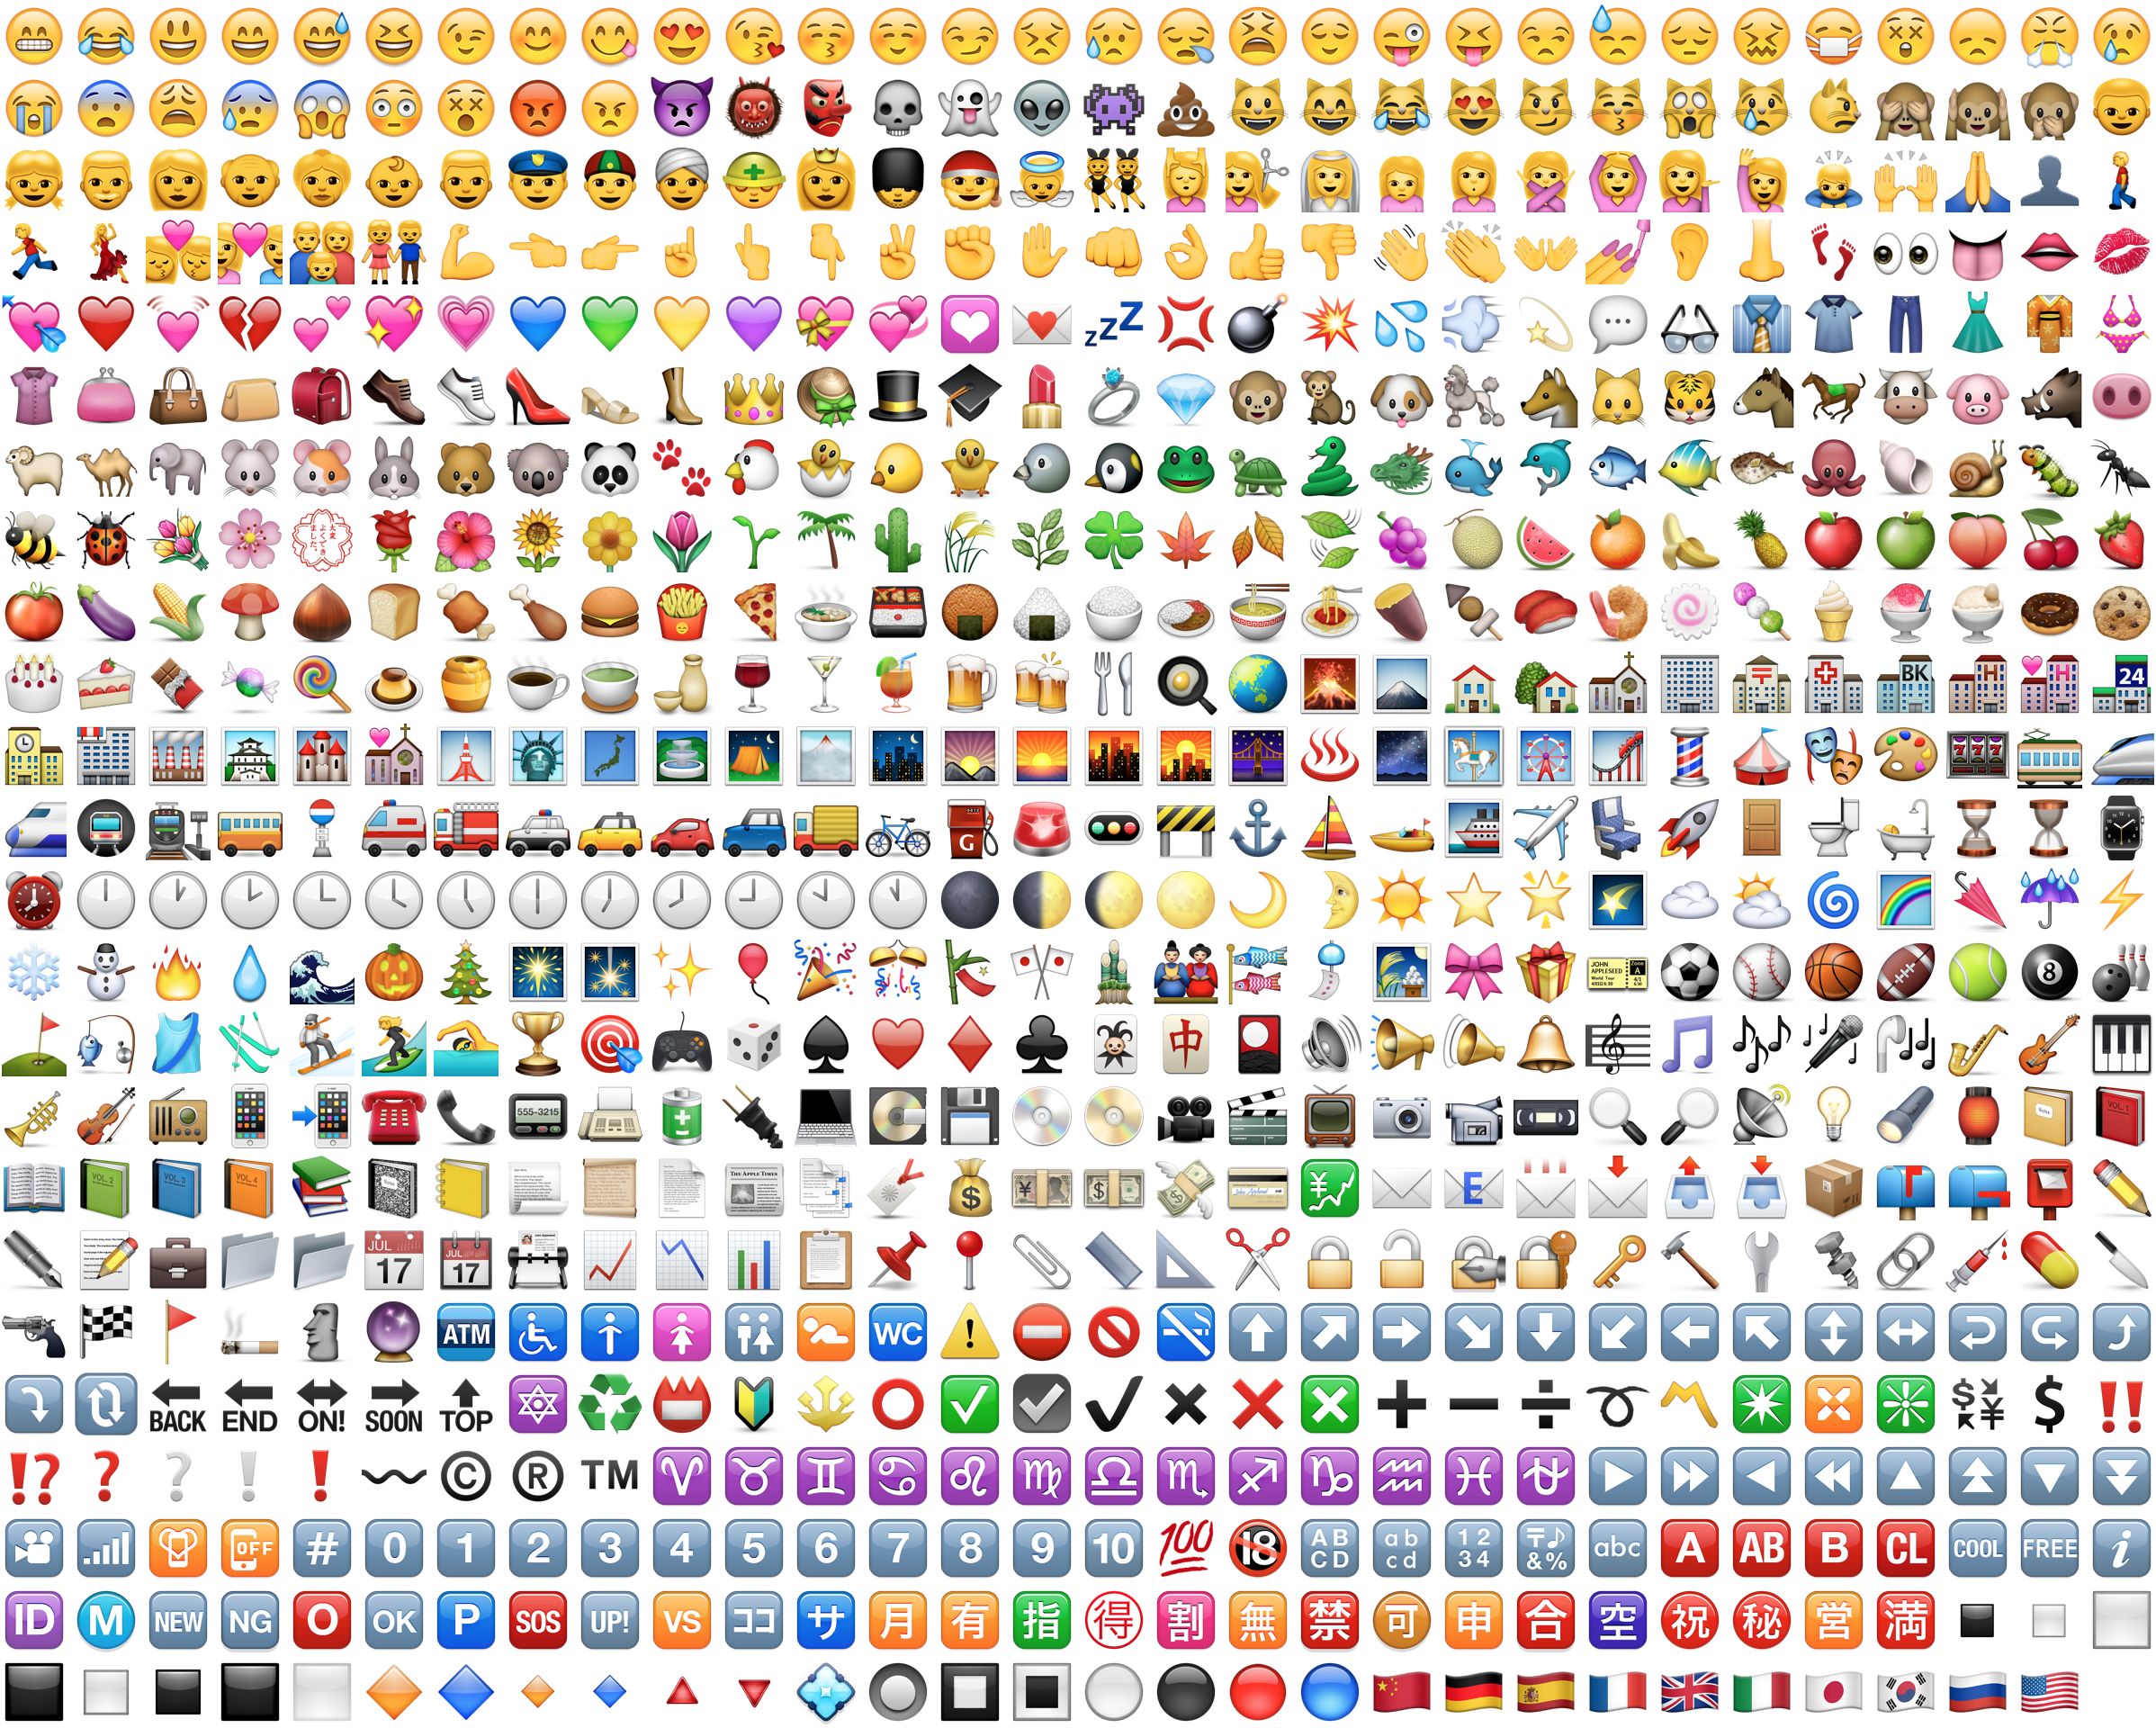 Official unicode emoji chart from 2016 03 28 image direct url official unicode emoji chart from 2016 03 28 image direct url nvjuhfo Images